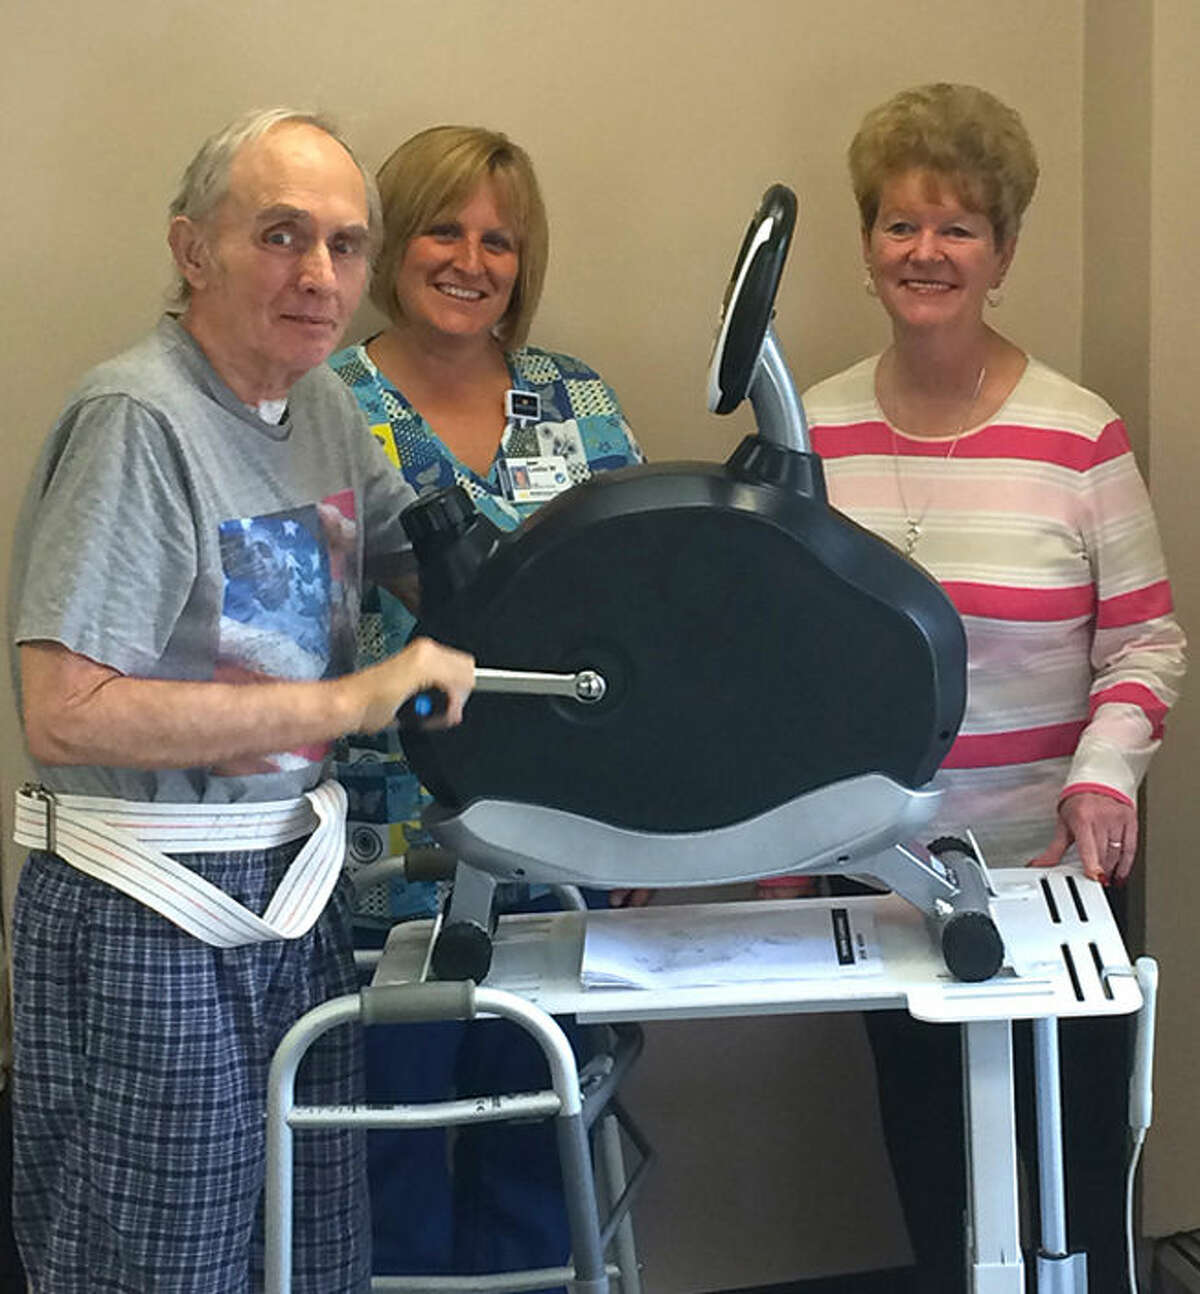 Pictured with the new equipment are Michael Howard, MidMichigan Gladwin Pines resident; Leslie Worden, physical therapist assistant; and Pat Murney, president of the Fraternal Order of Eagles Retired Activity Club.